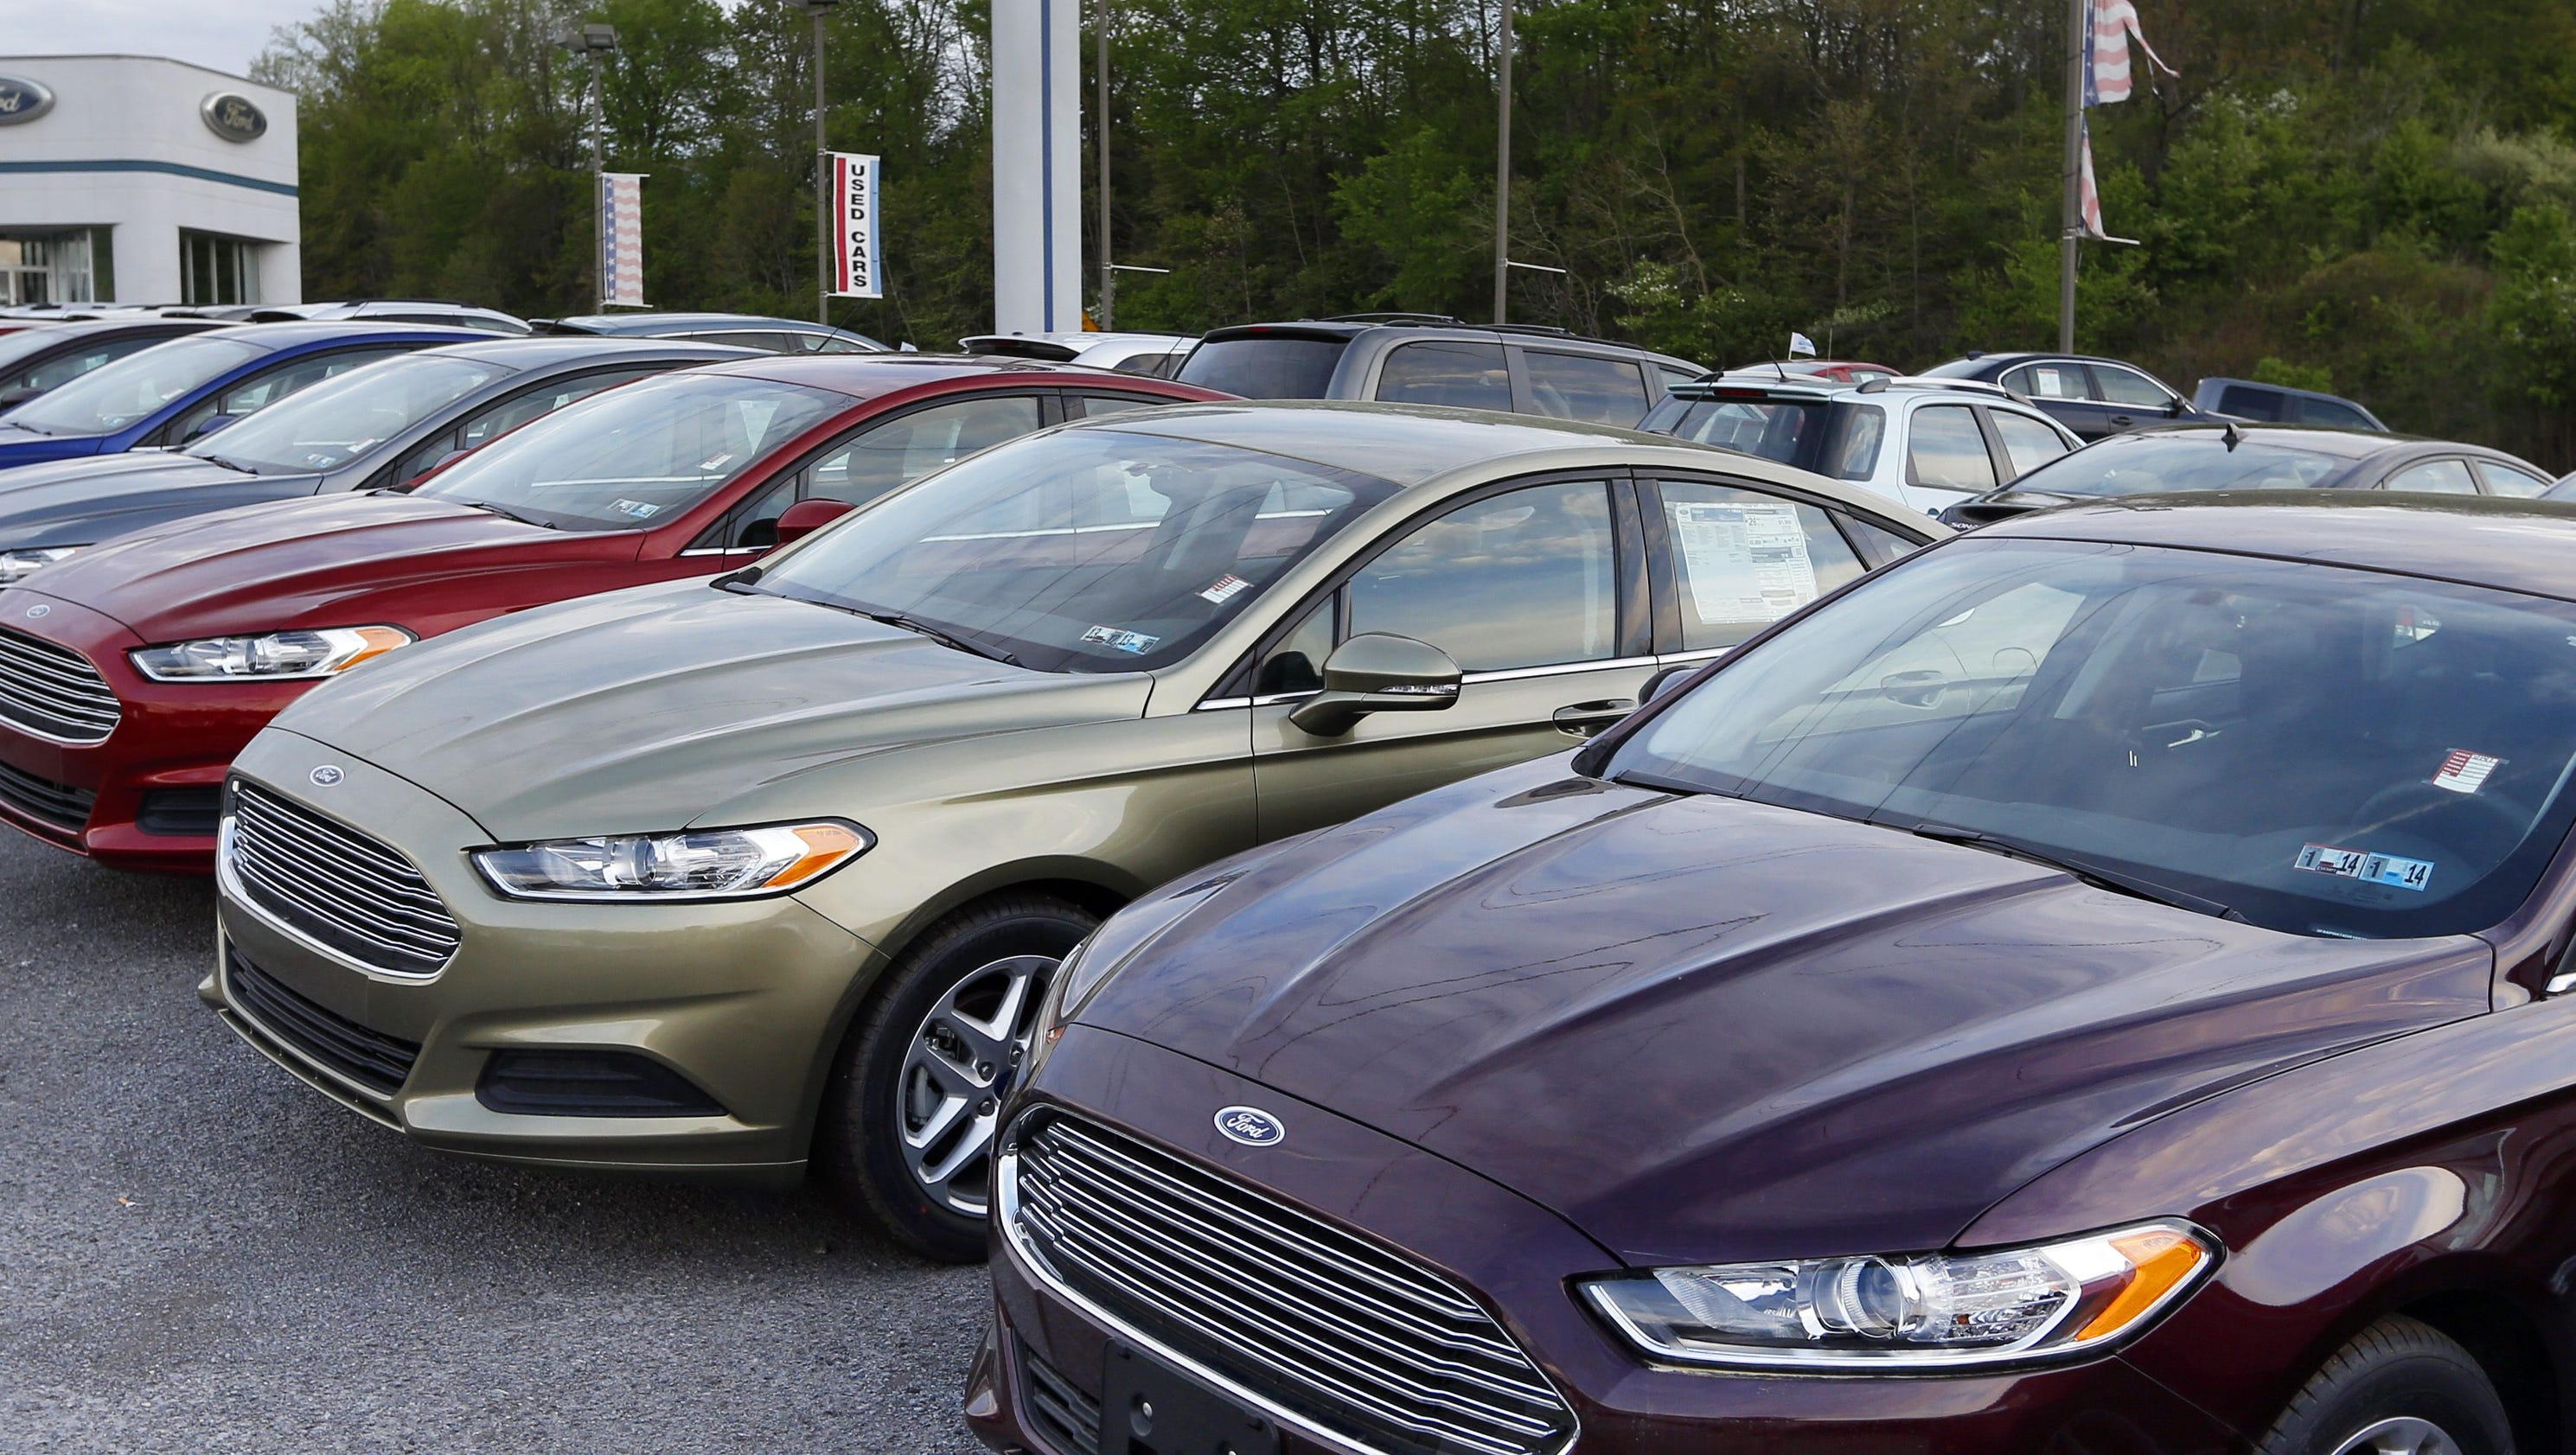 Auto Sales Data Today: How Much Will A Fed Rate Hike Impact Your Next Auto Loan?